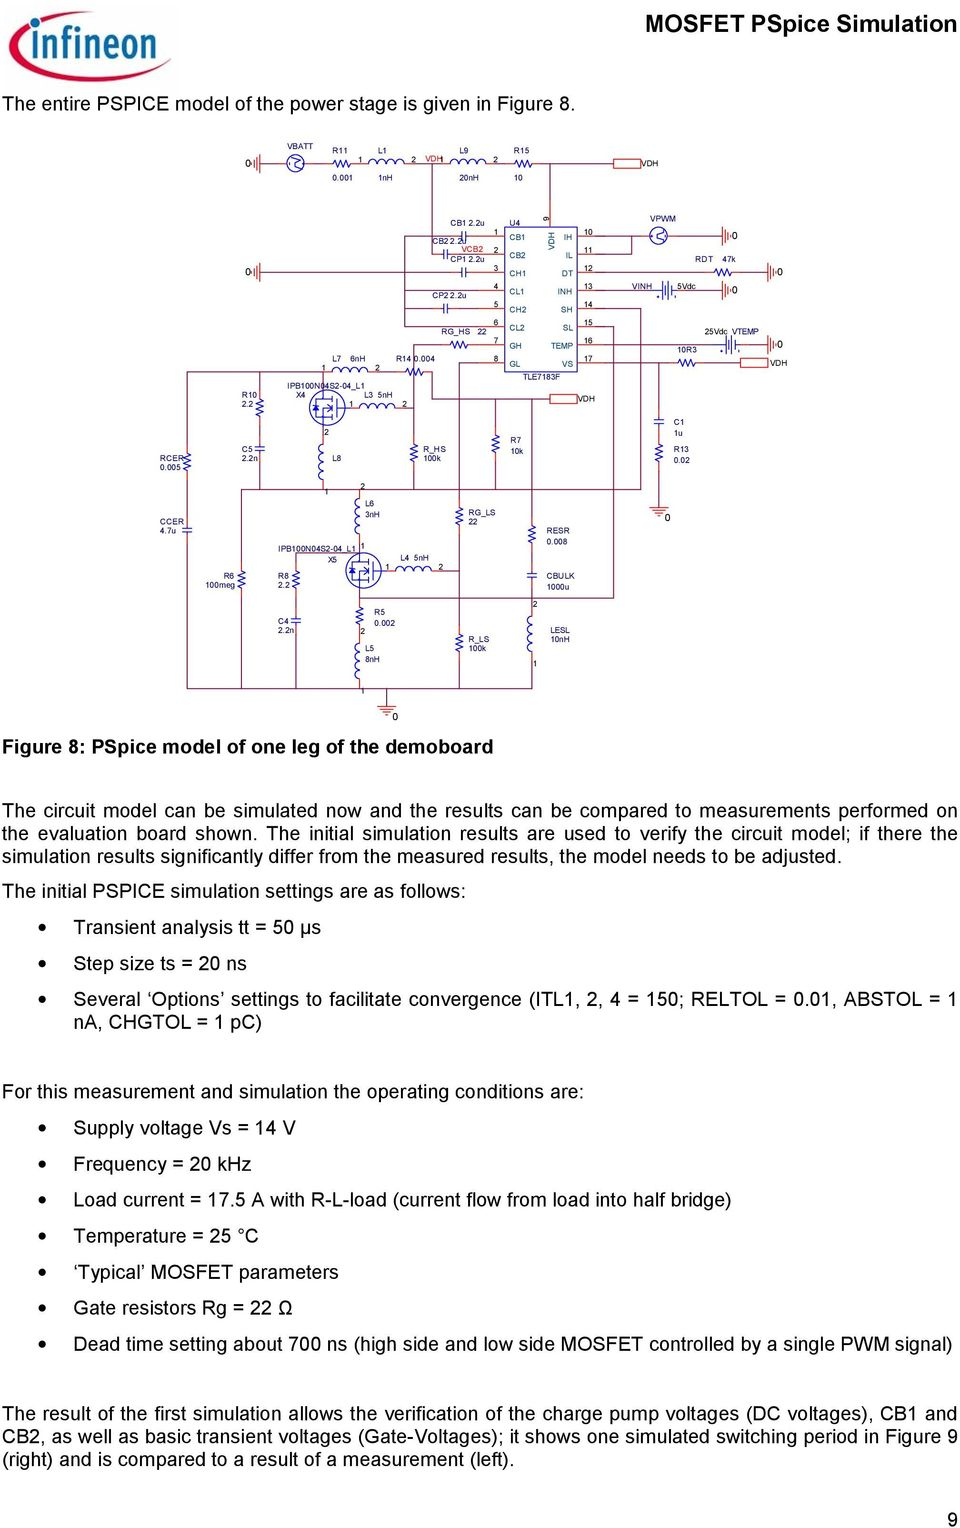 Simulation With Pspice Pdf Voltage Converter Circuit Using Tda2003 2n 2 L8 R Hs 1k R7 C1 1u R132 Ccer 47u R6